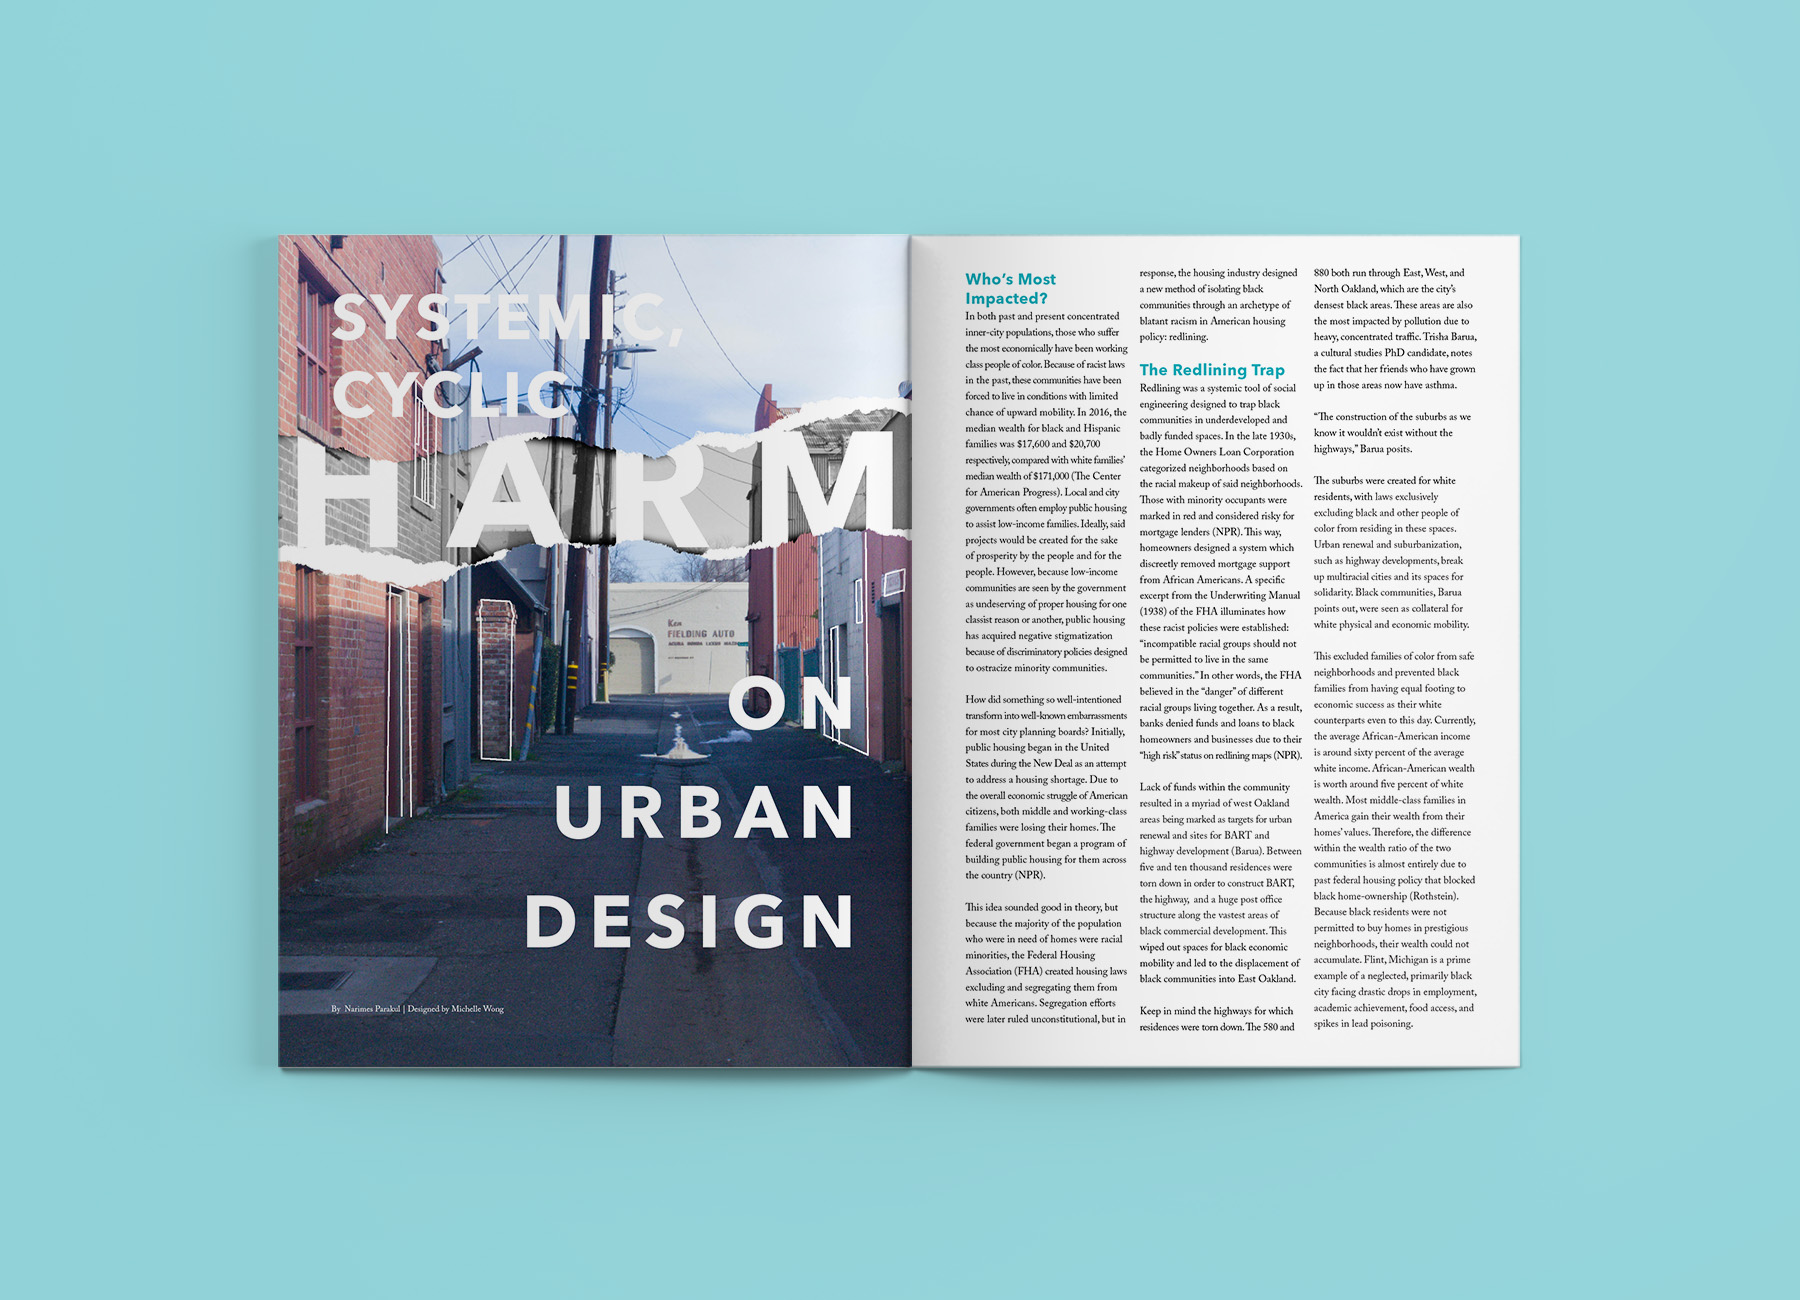 Systemic cyclic harm on urban design - Written by April ParakulDesigned by Michelle Wong